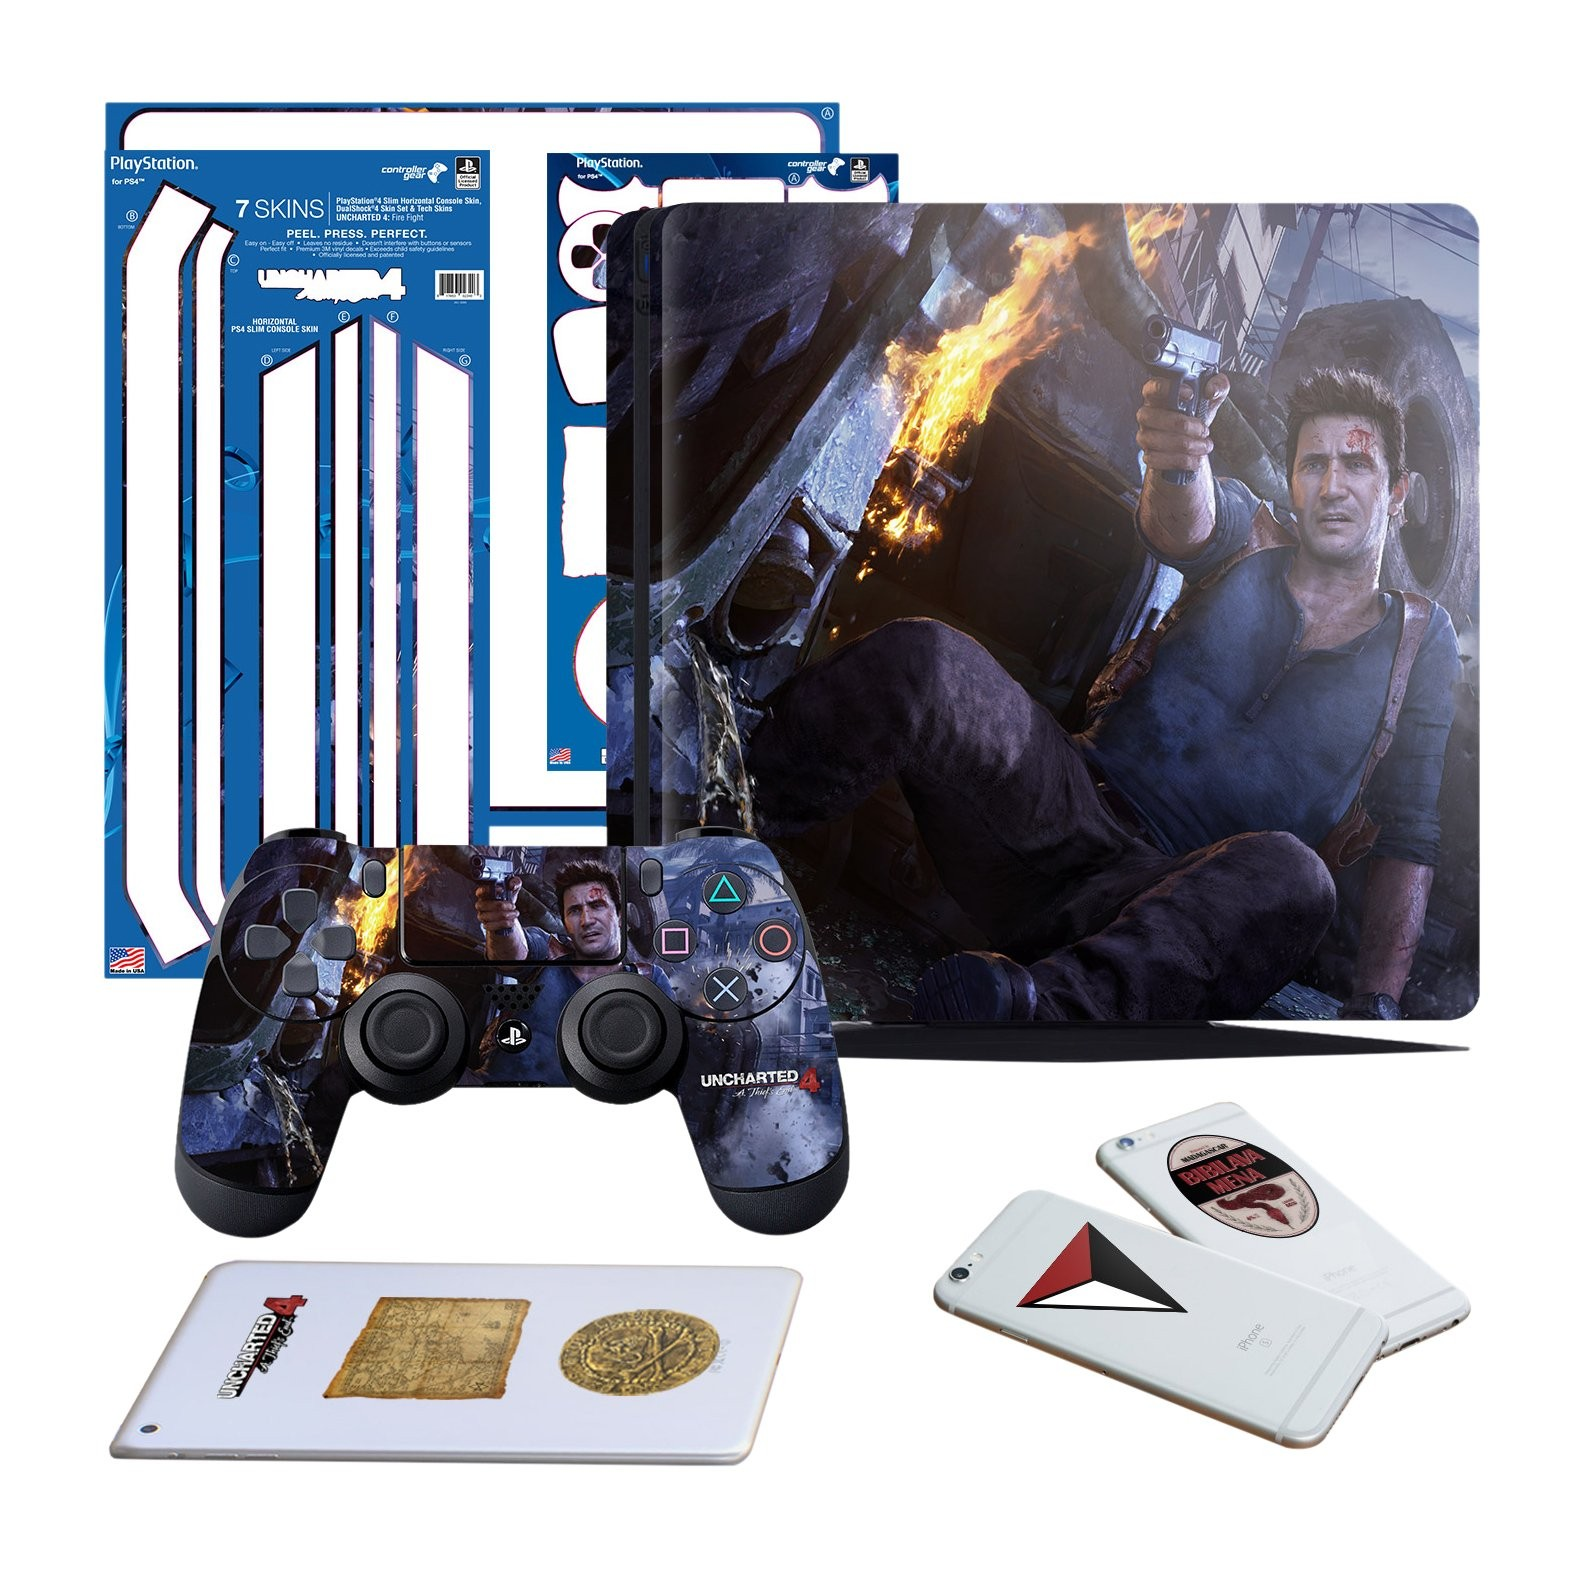 Uncharted 4 Fire Fight - PS4 SLIM Vertical Console and Controller Gaming Skin Pack - Officially Licensed by PlayStation - Controller Gear